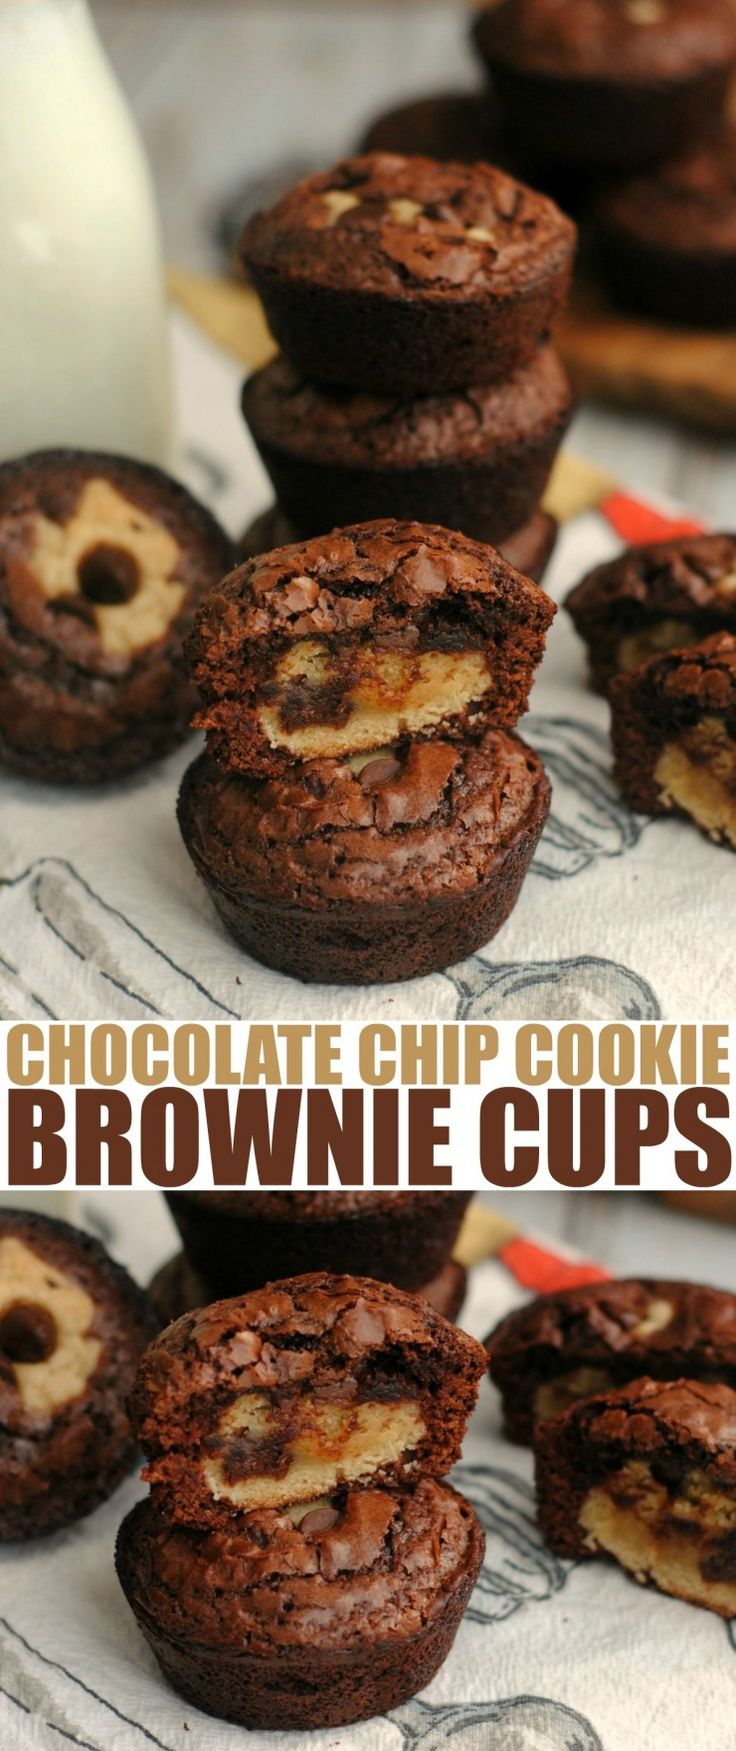 These Chocolate Chip Cookie Brownie Cups combine the best of two dessert recipe classics to create one unforgettable dessert.